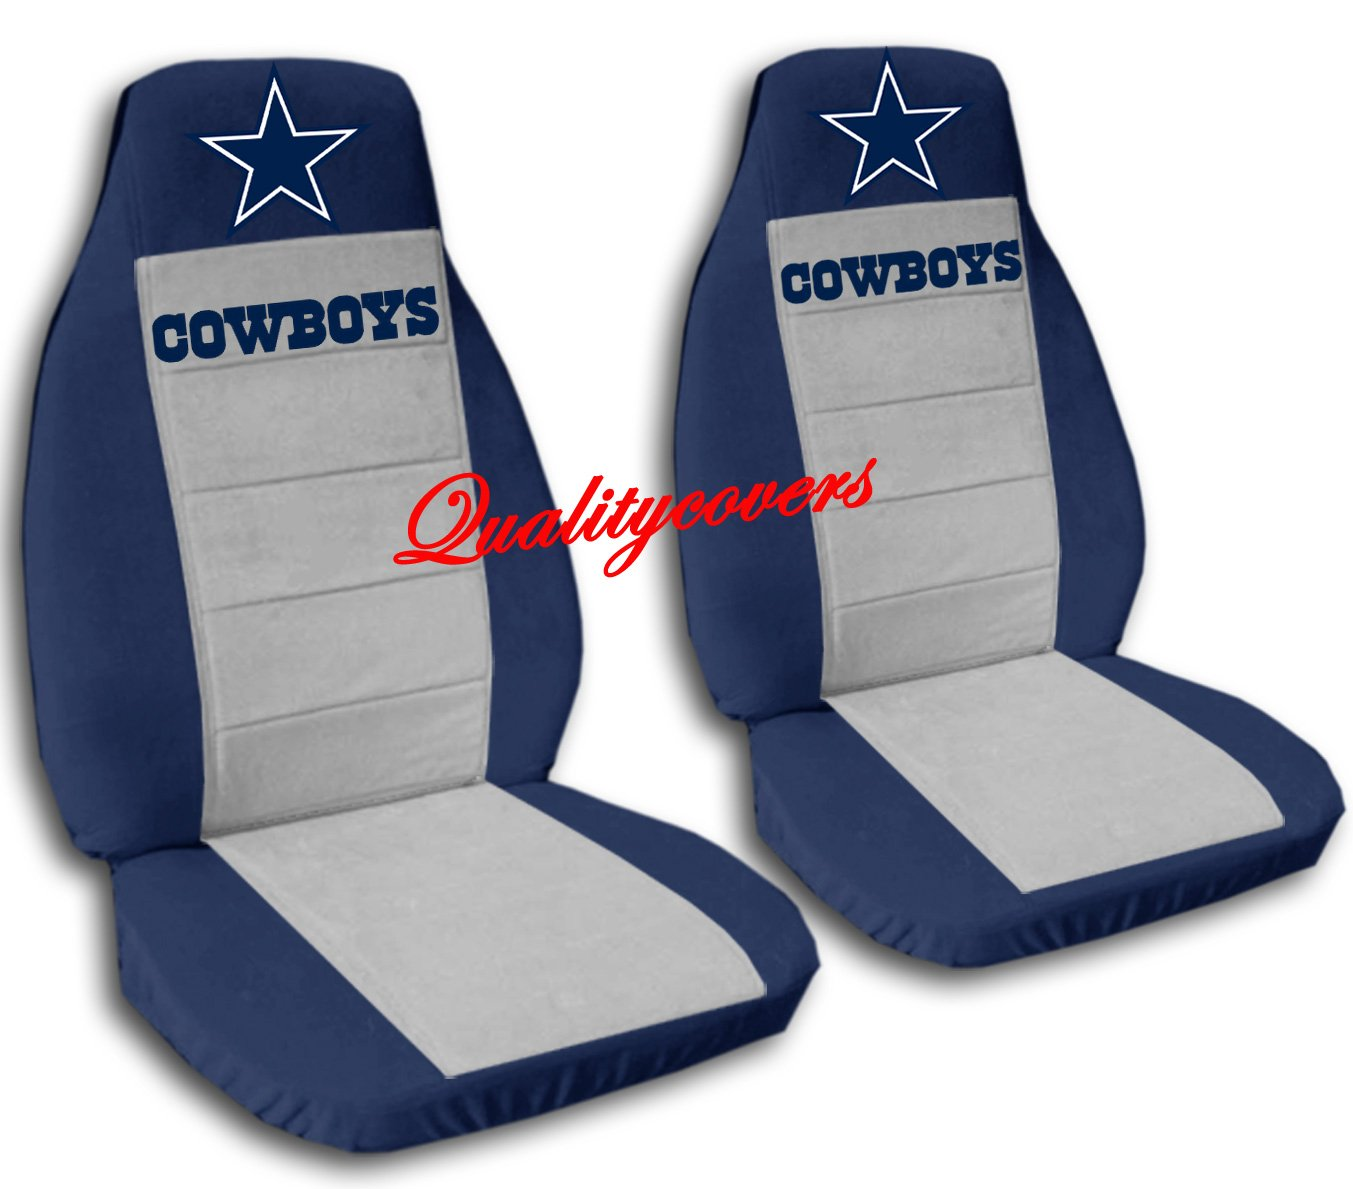 2 Navy Blue and Silver Cowboy seat covers for a 2008 Dodge Nitro Side Airbag friendly. by Designcovers (Image #1)